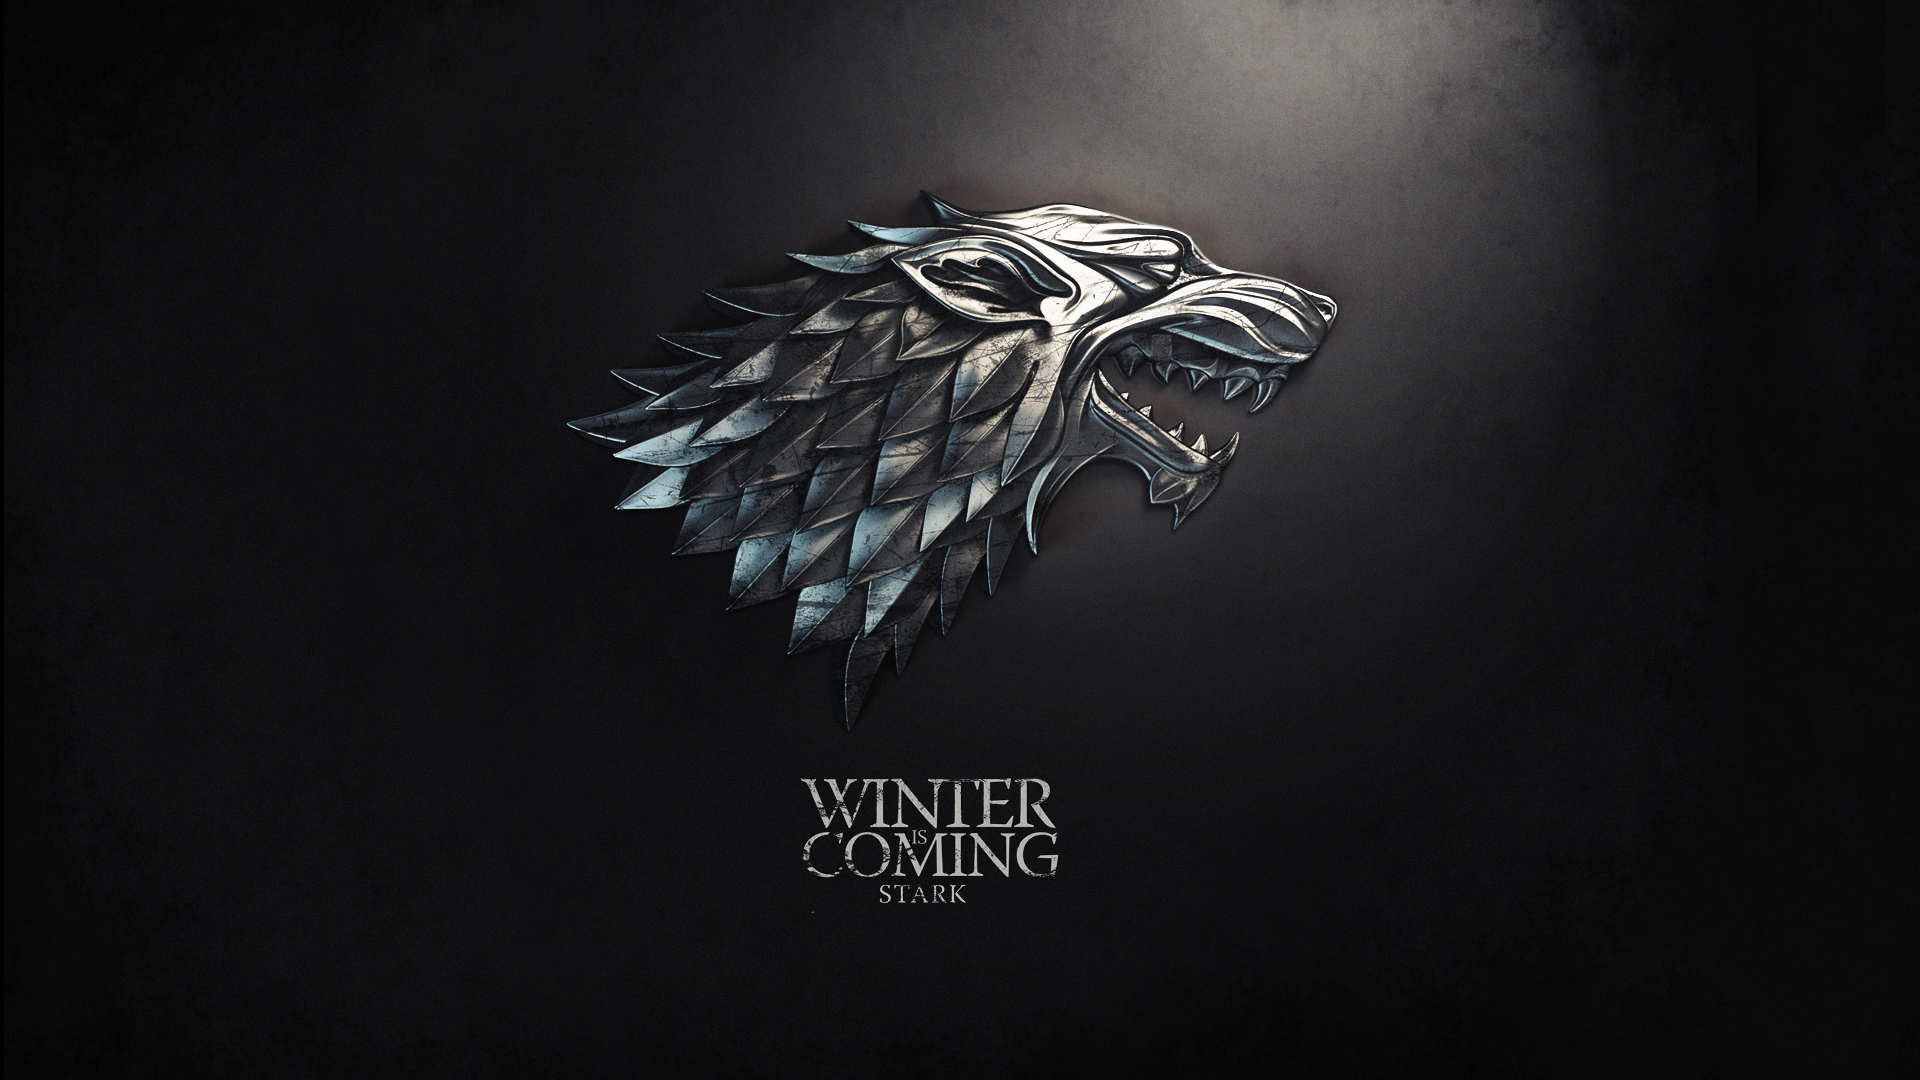 Stark Full HD Wallpaper And Hintergrund